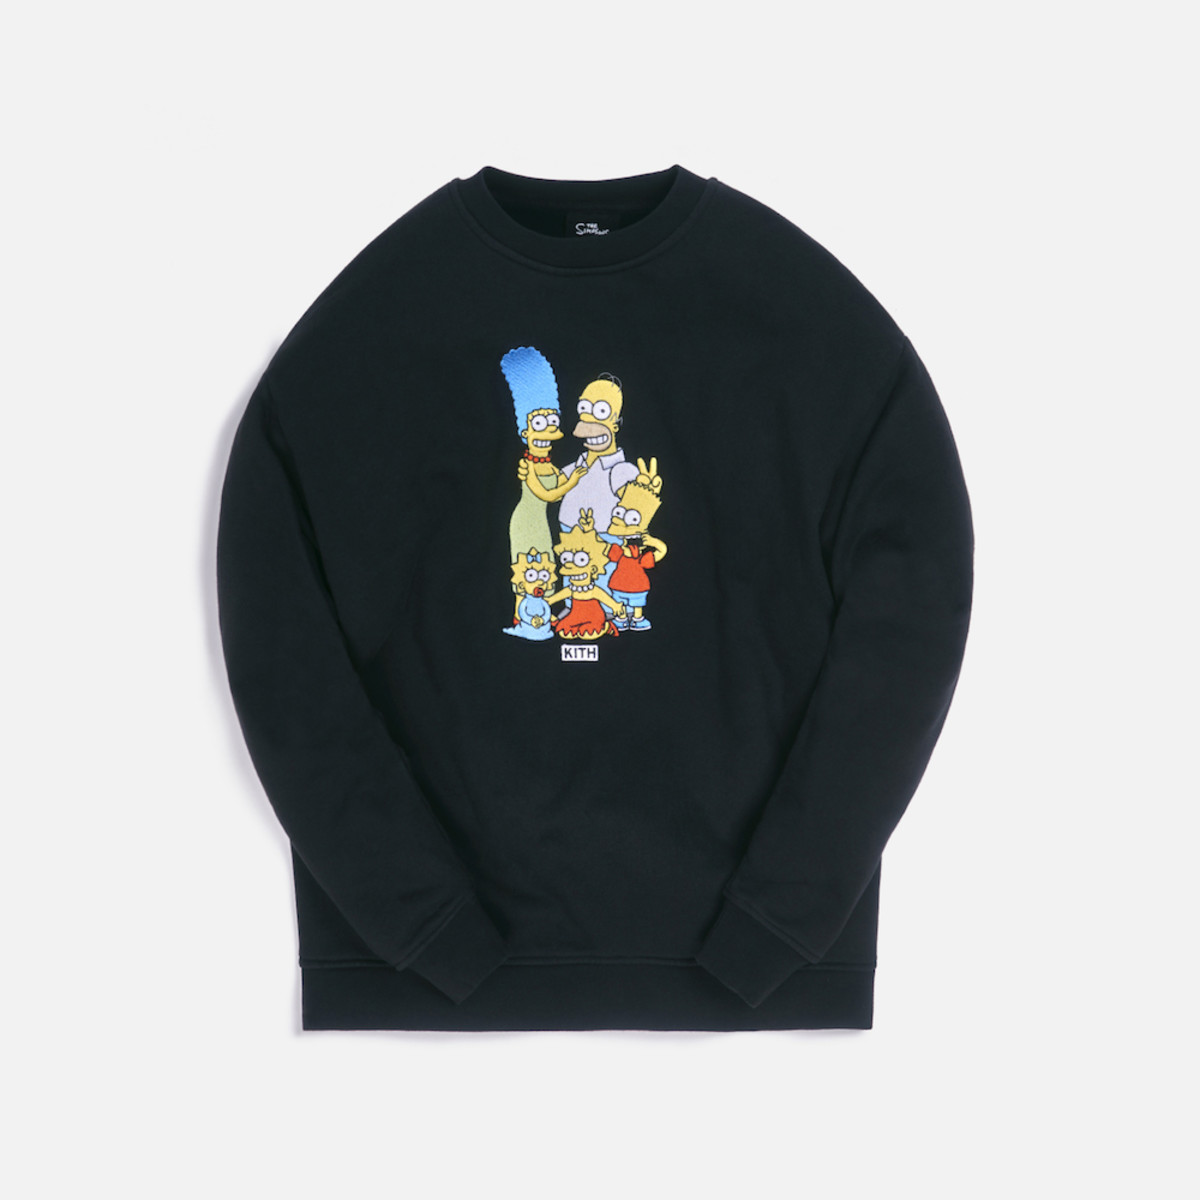 Here's a Full Look at Kith's 'The Simpsons' Collection